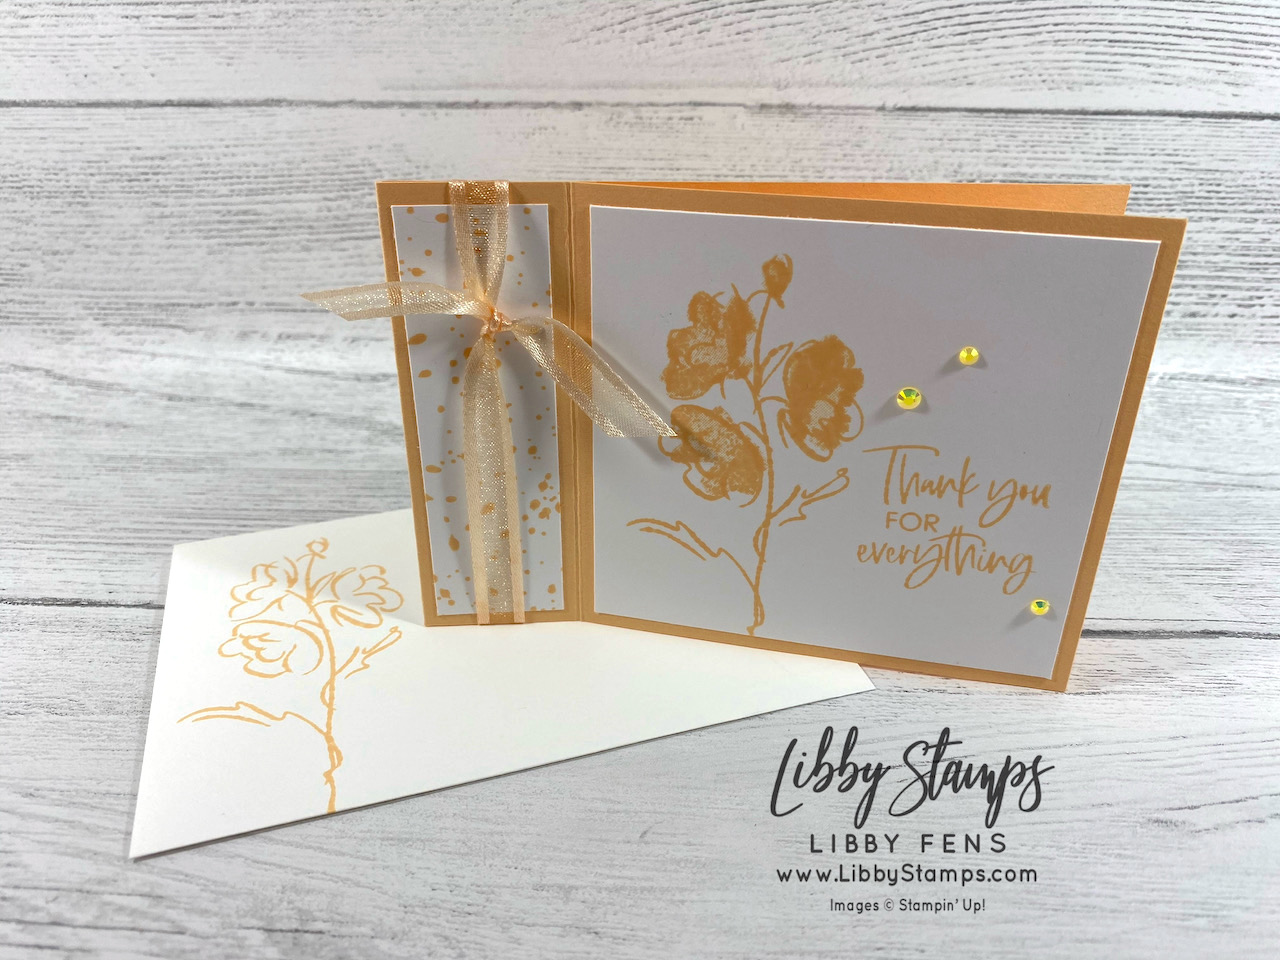 libbystamps, Stampin' Up!, Color & Contour, Pale Papaya, Ink Stamp Share Blog Hop, Book Fold, 2021-2023 In Color Jewels